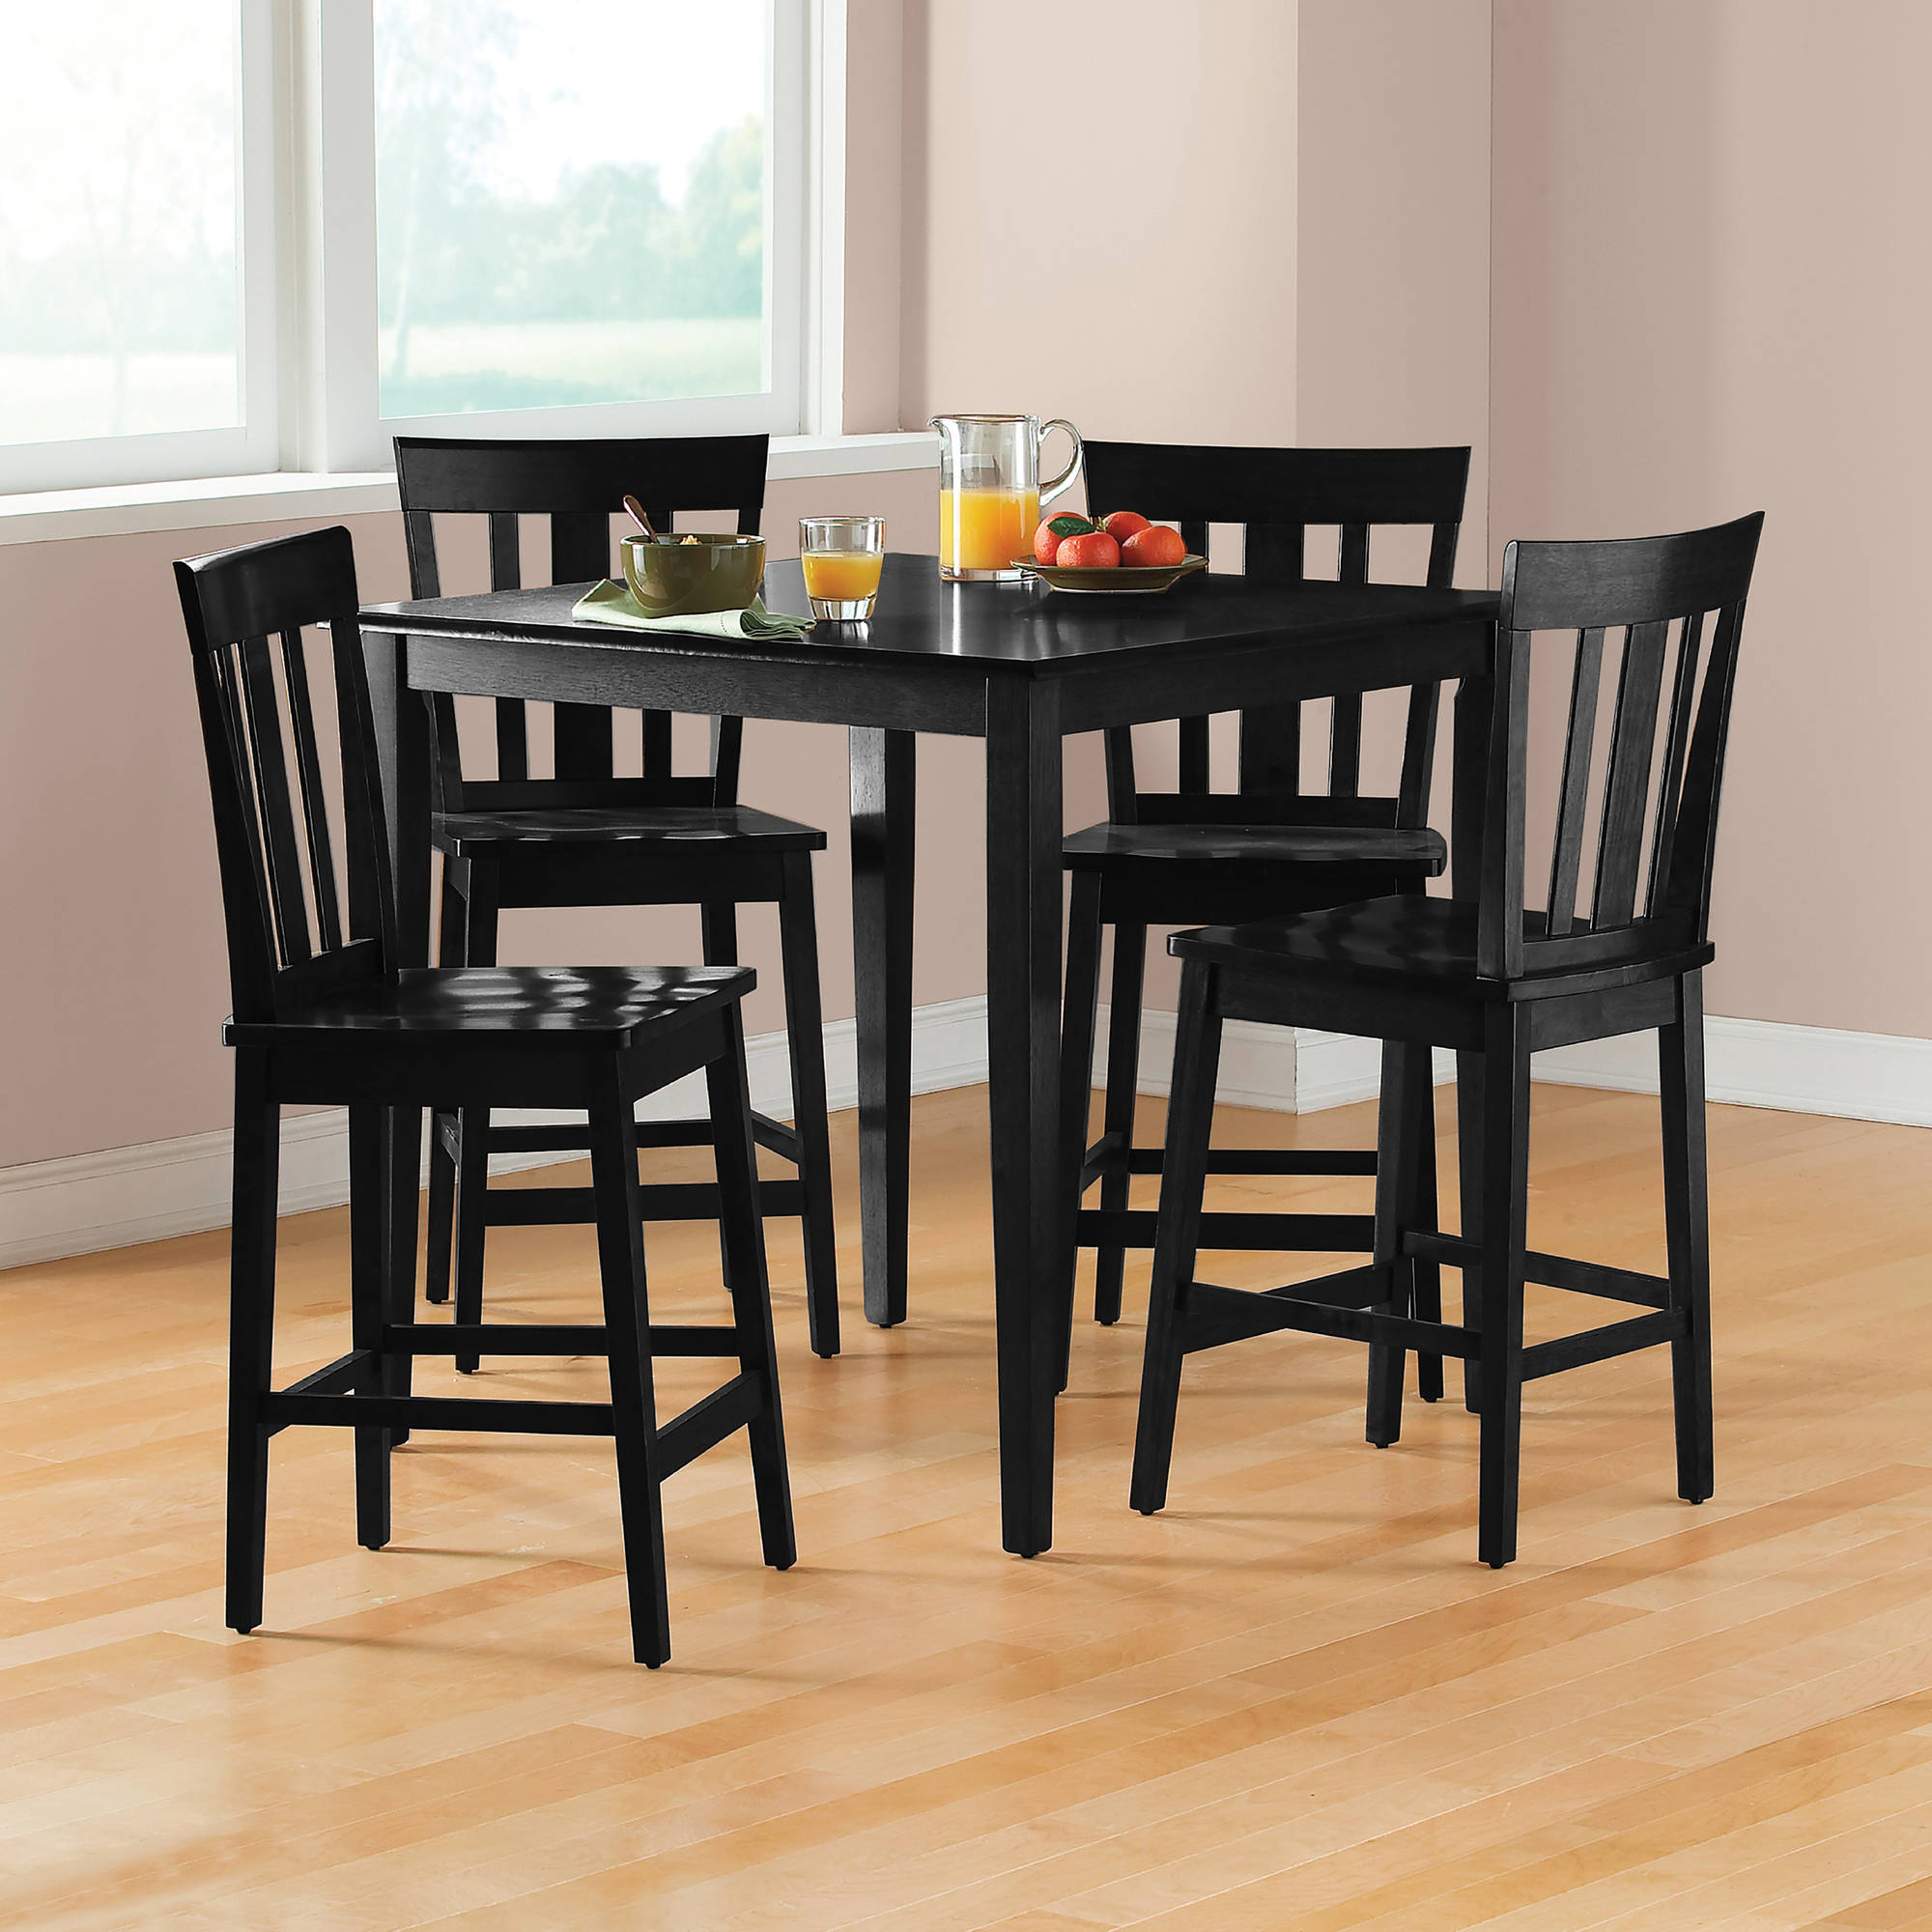 Inspiration about Recent Sheetz 3 Piece Counter Height Dining Sets Throughout Mainstays 5 Piece Mission Counter Height Dining Set – Walmart (#11 of 20)